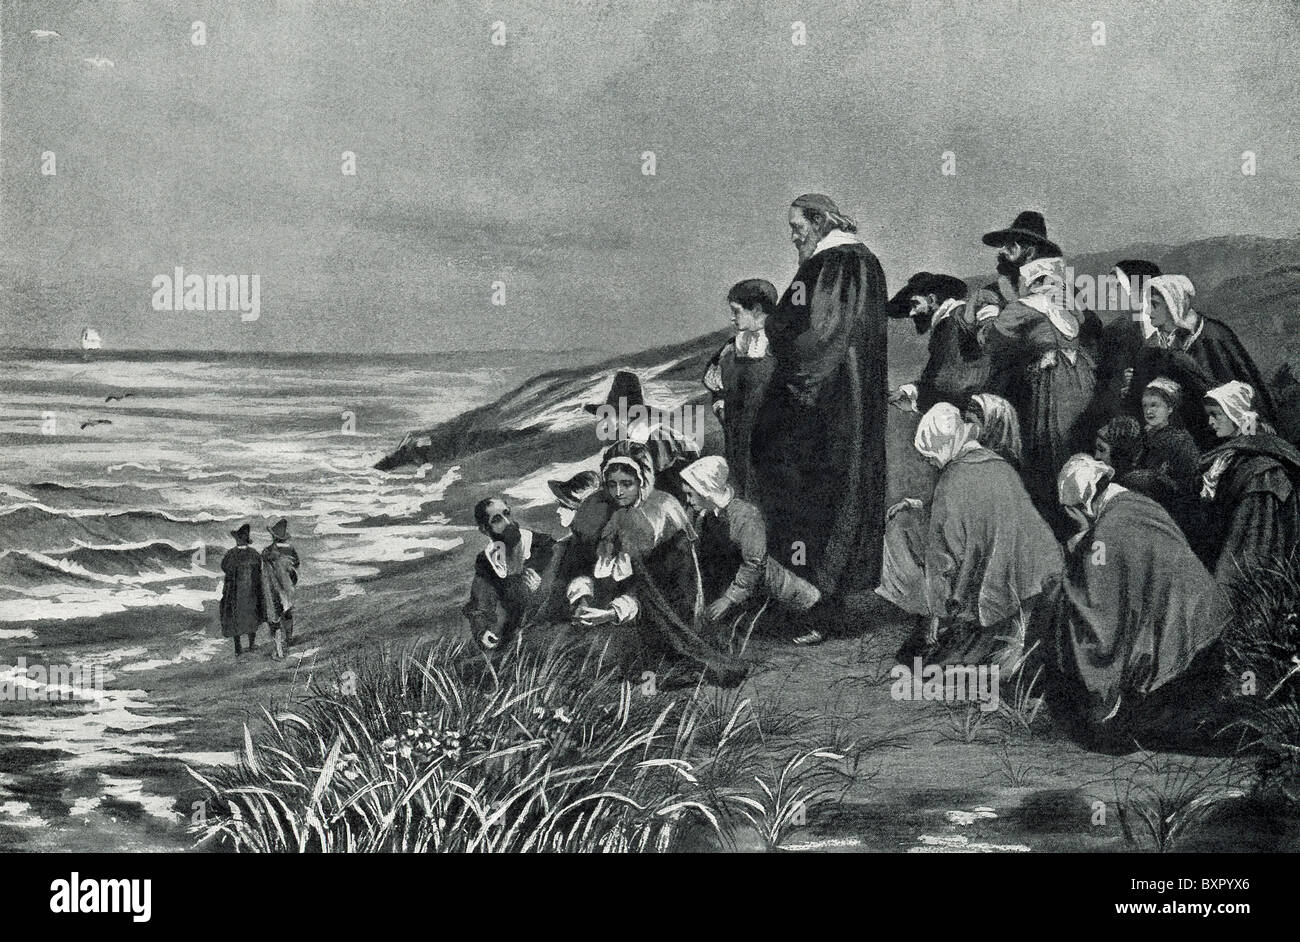 The Pilgrims at Plymouth watching the Mayflower depart for England in April 1621. - Stock Image